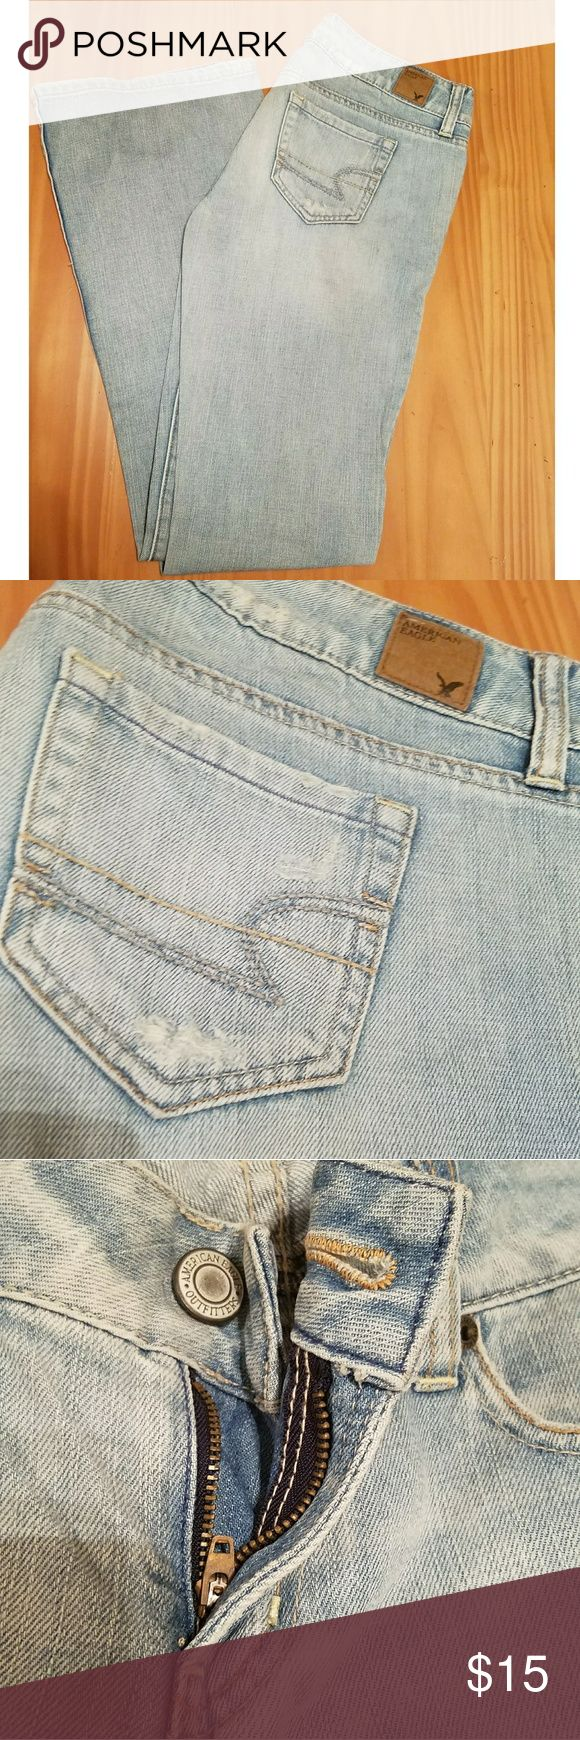 "American Eagle jeans American Eagle brand women's jeans. Bootcut. Light wash. Pre-owned. Good condition. Inseam 30""  women's size 4. Distressed look. American Eagle Outfitters Jeans Boot Cut"